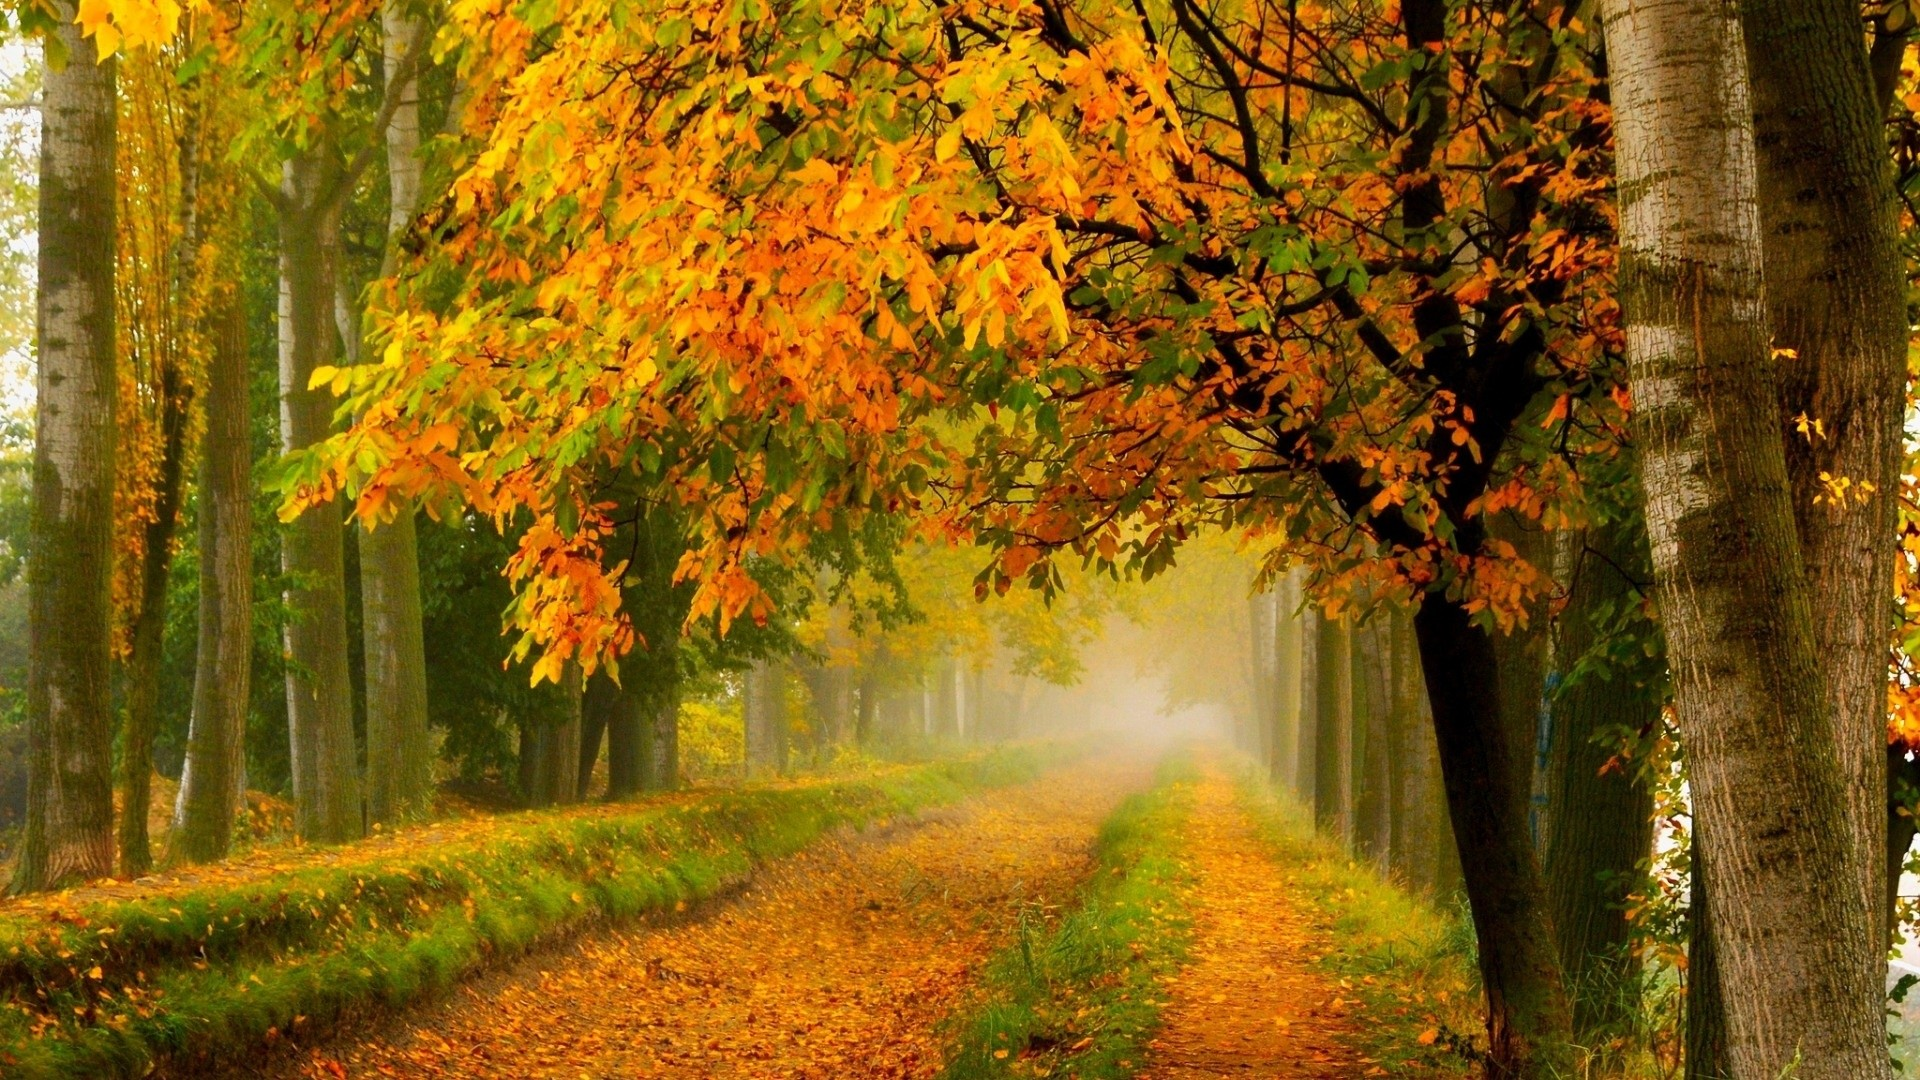 Colorful Autumn Fall Forest Park Wallpaper [1920 x 1080] Need #iPhone #6S